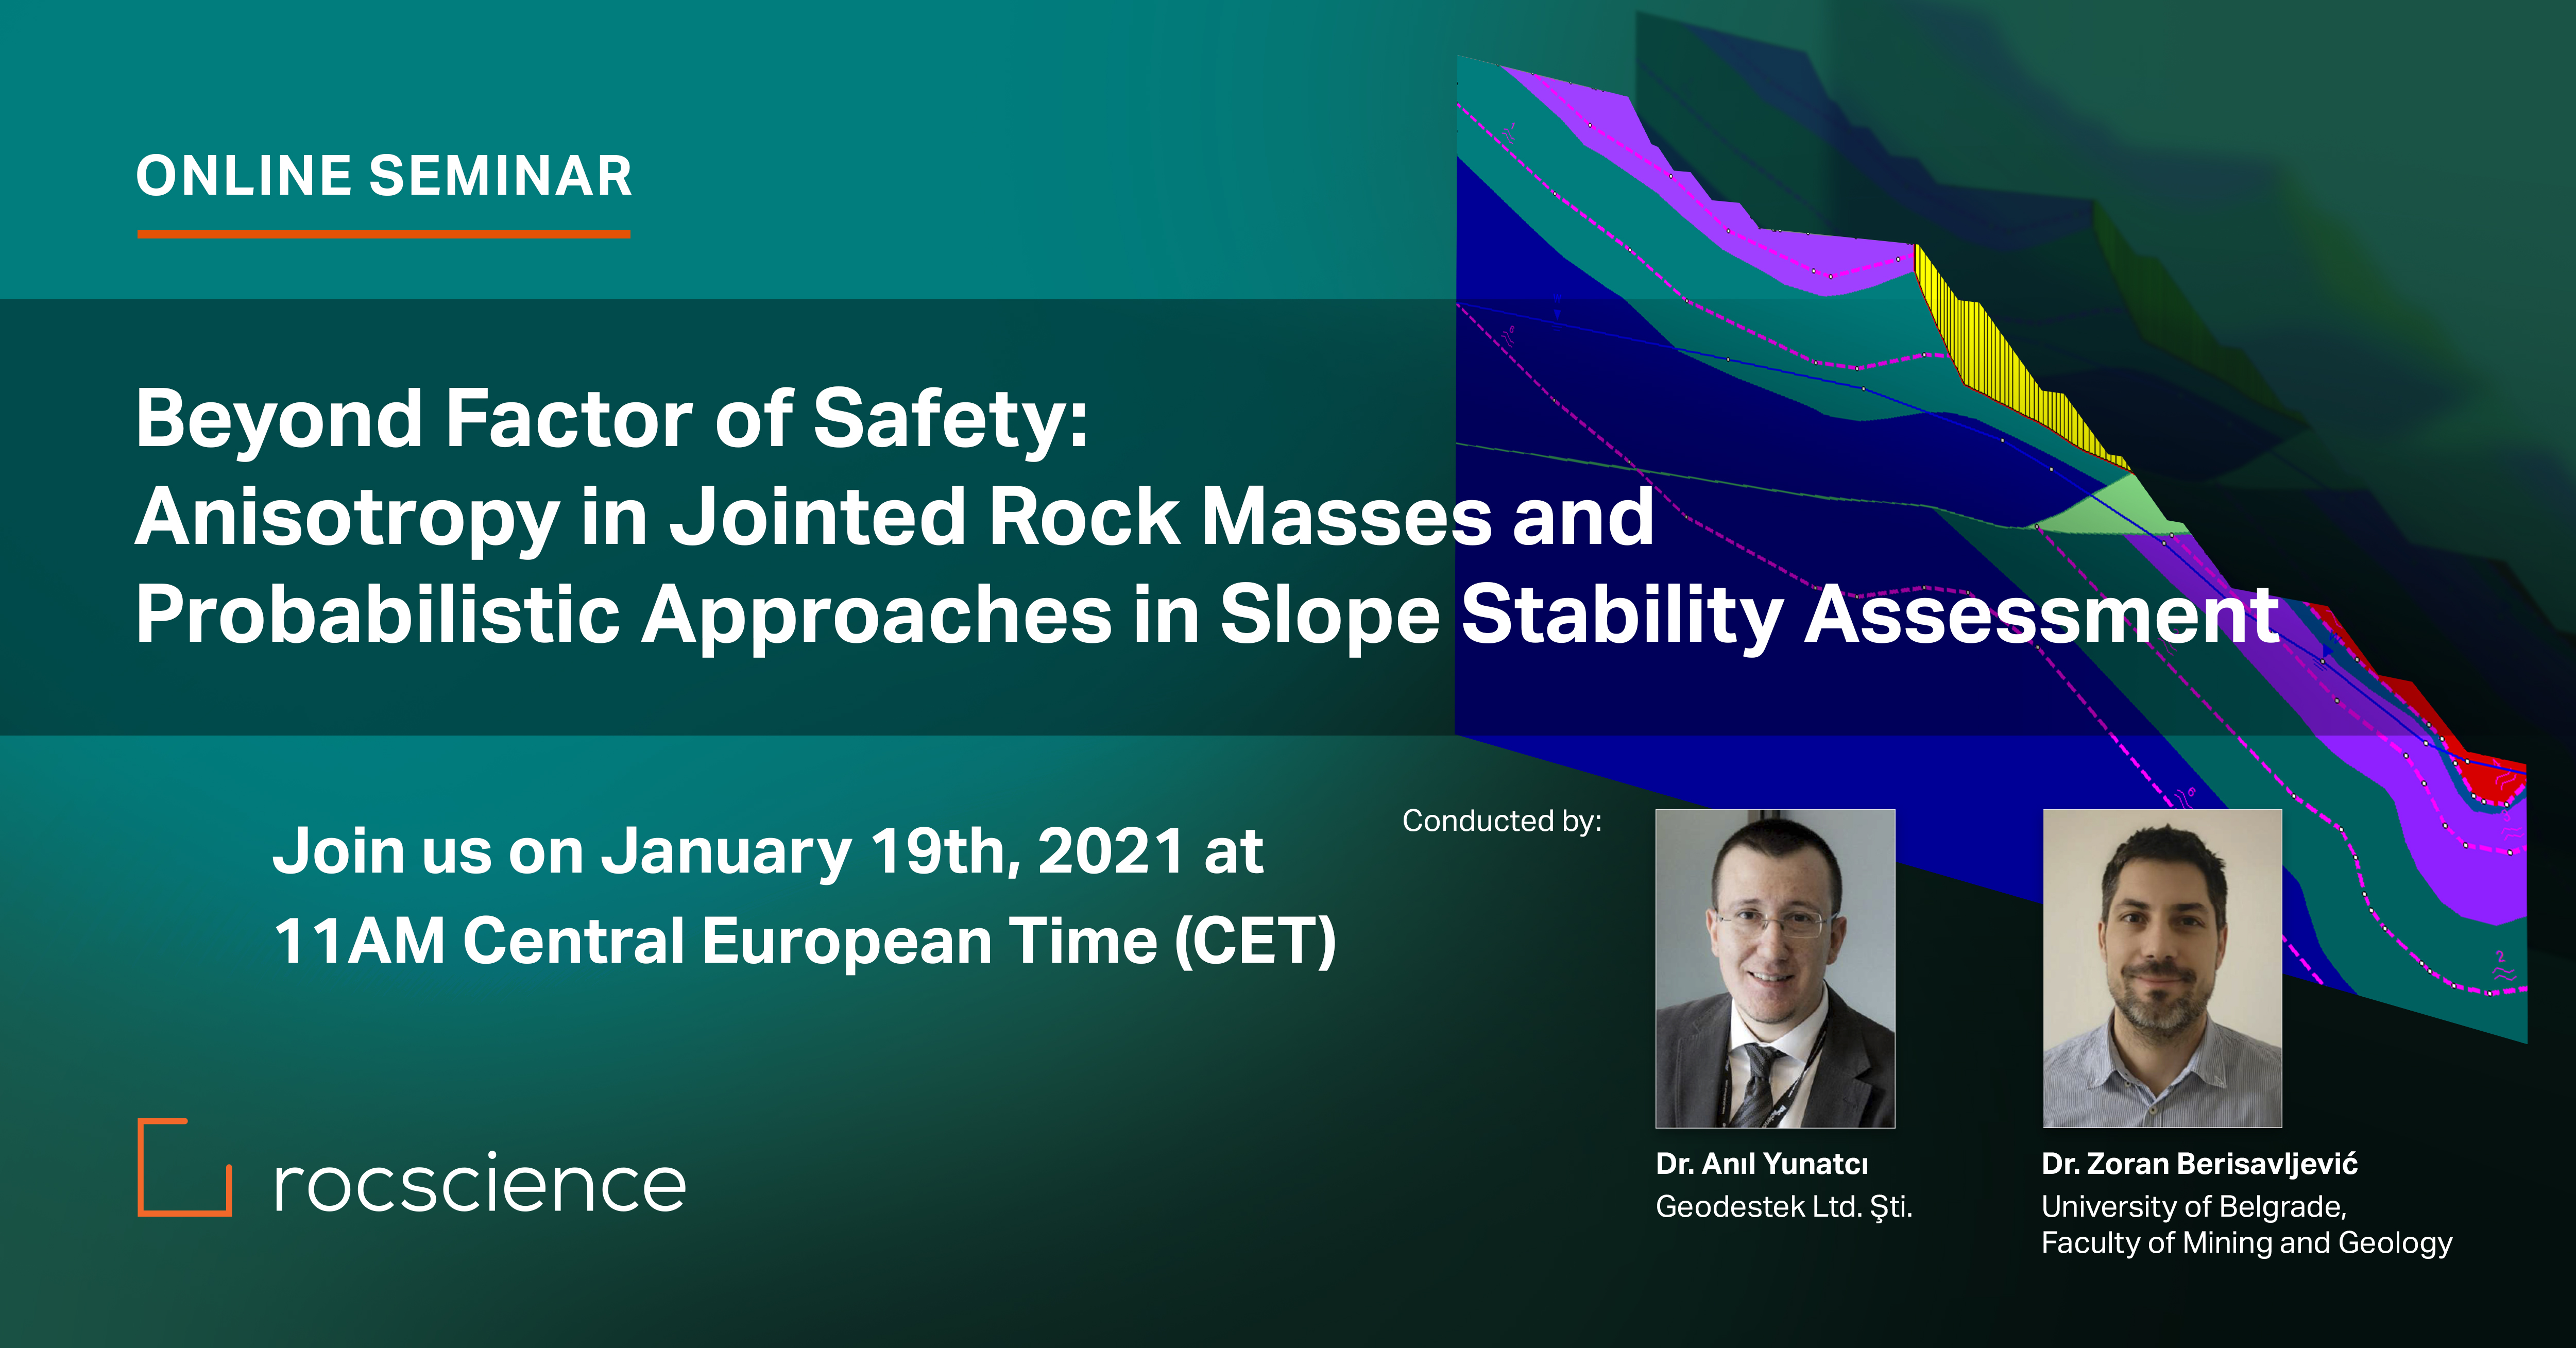 Rocscience Seminar- Beyond Factor of Safety: Anisotropy in Jointed Rock Masses and Probabilistic Approaches in Slope Stability Assessment